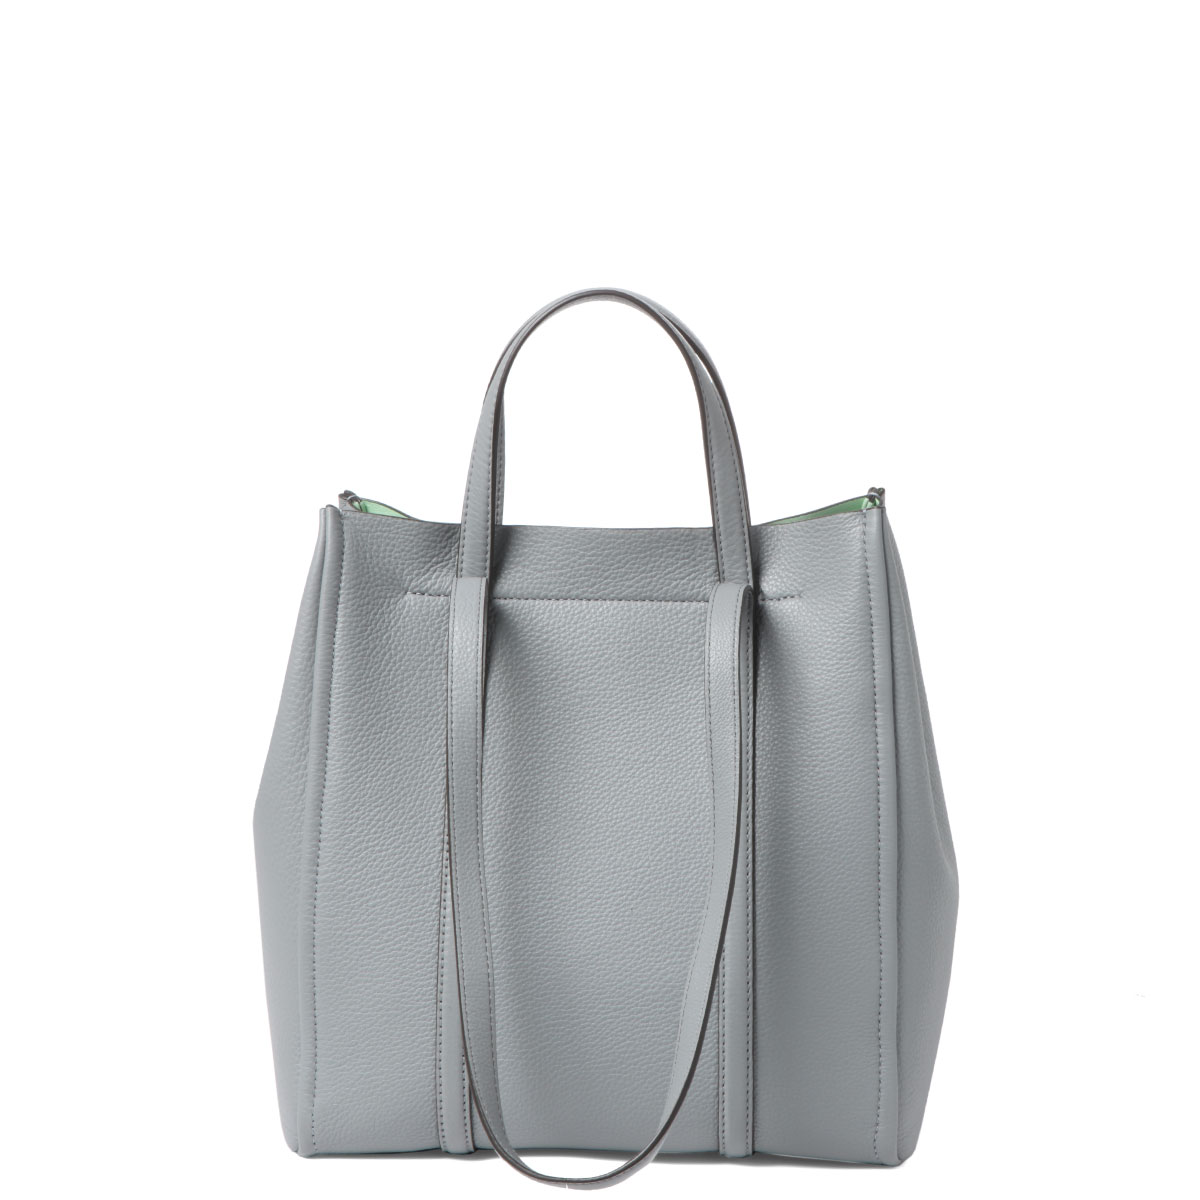 MARC JACOBS マーク ジェイコブス   トートバッグ   THE TAG 27 ザ タグ 27